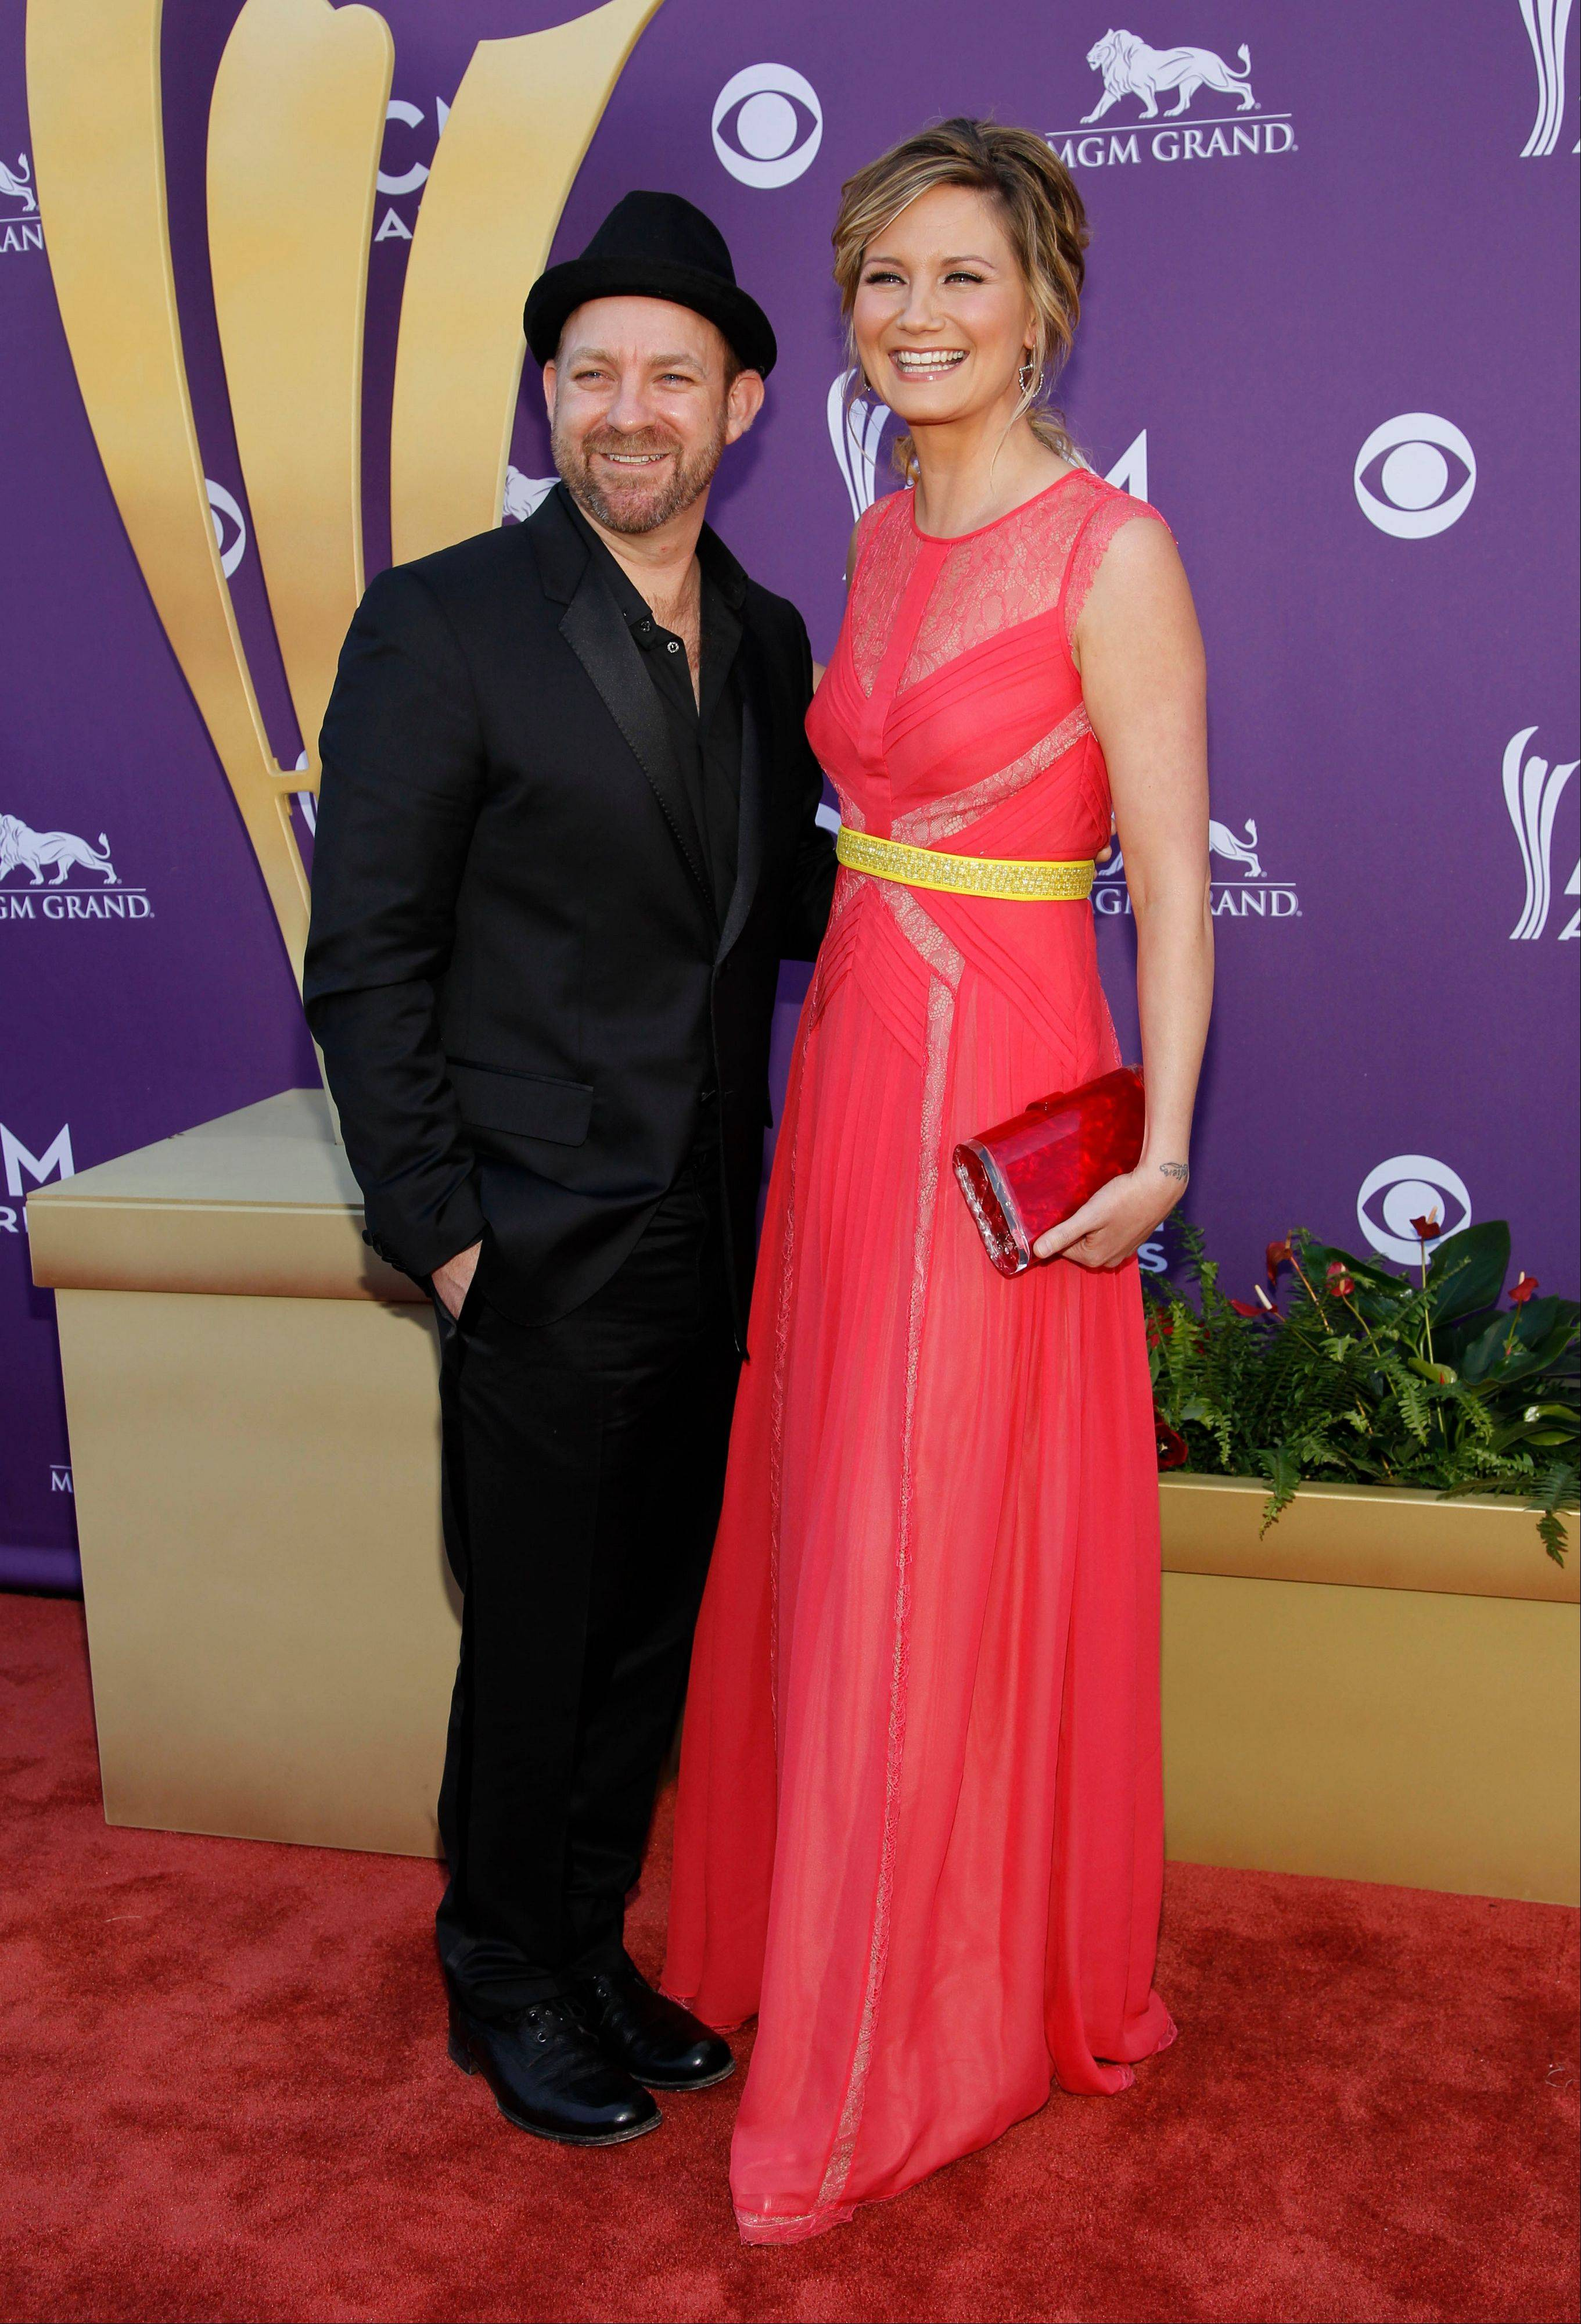 Kristian Bush, left, and Jennifer Nettles, of musical group Sugarland, show no nerves ahead of the ceremony. The duo was up for Vocal Duo of the Year.